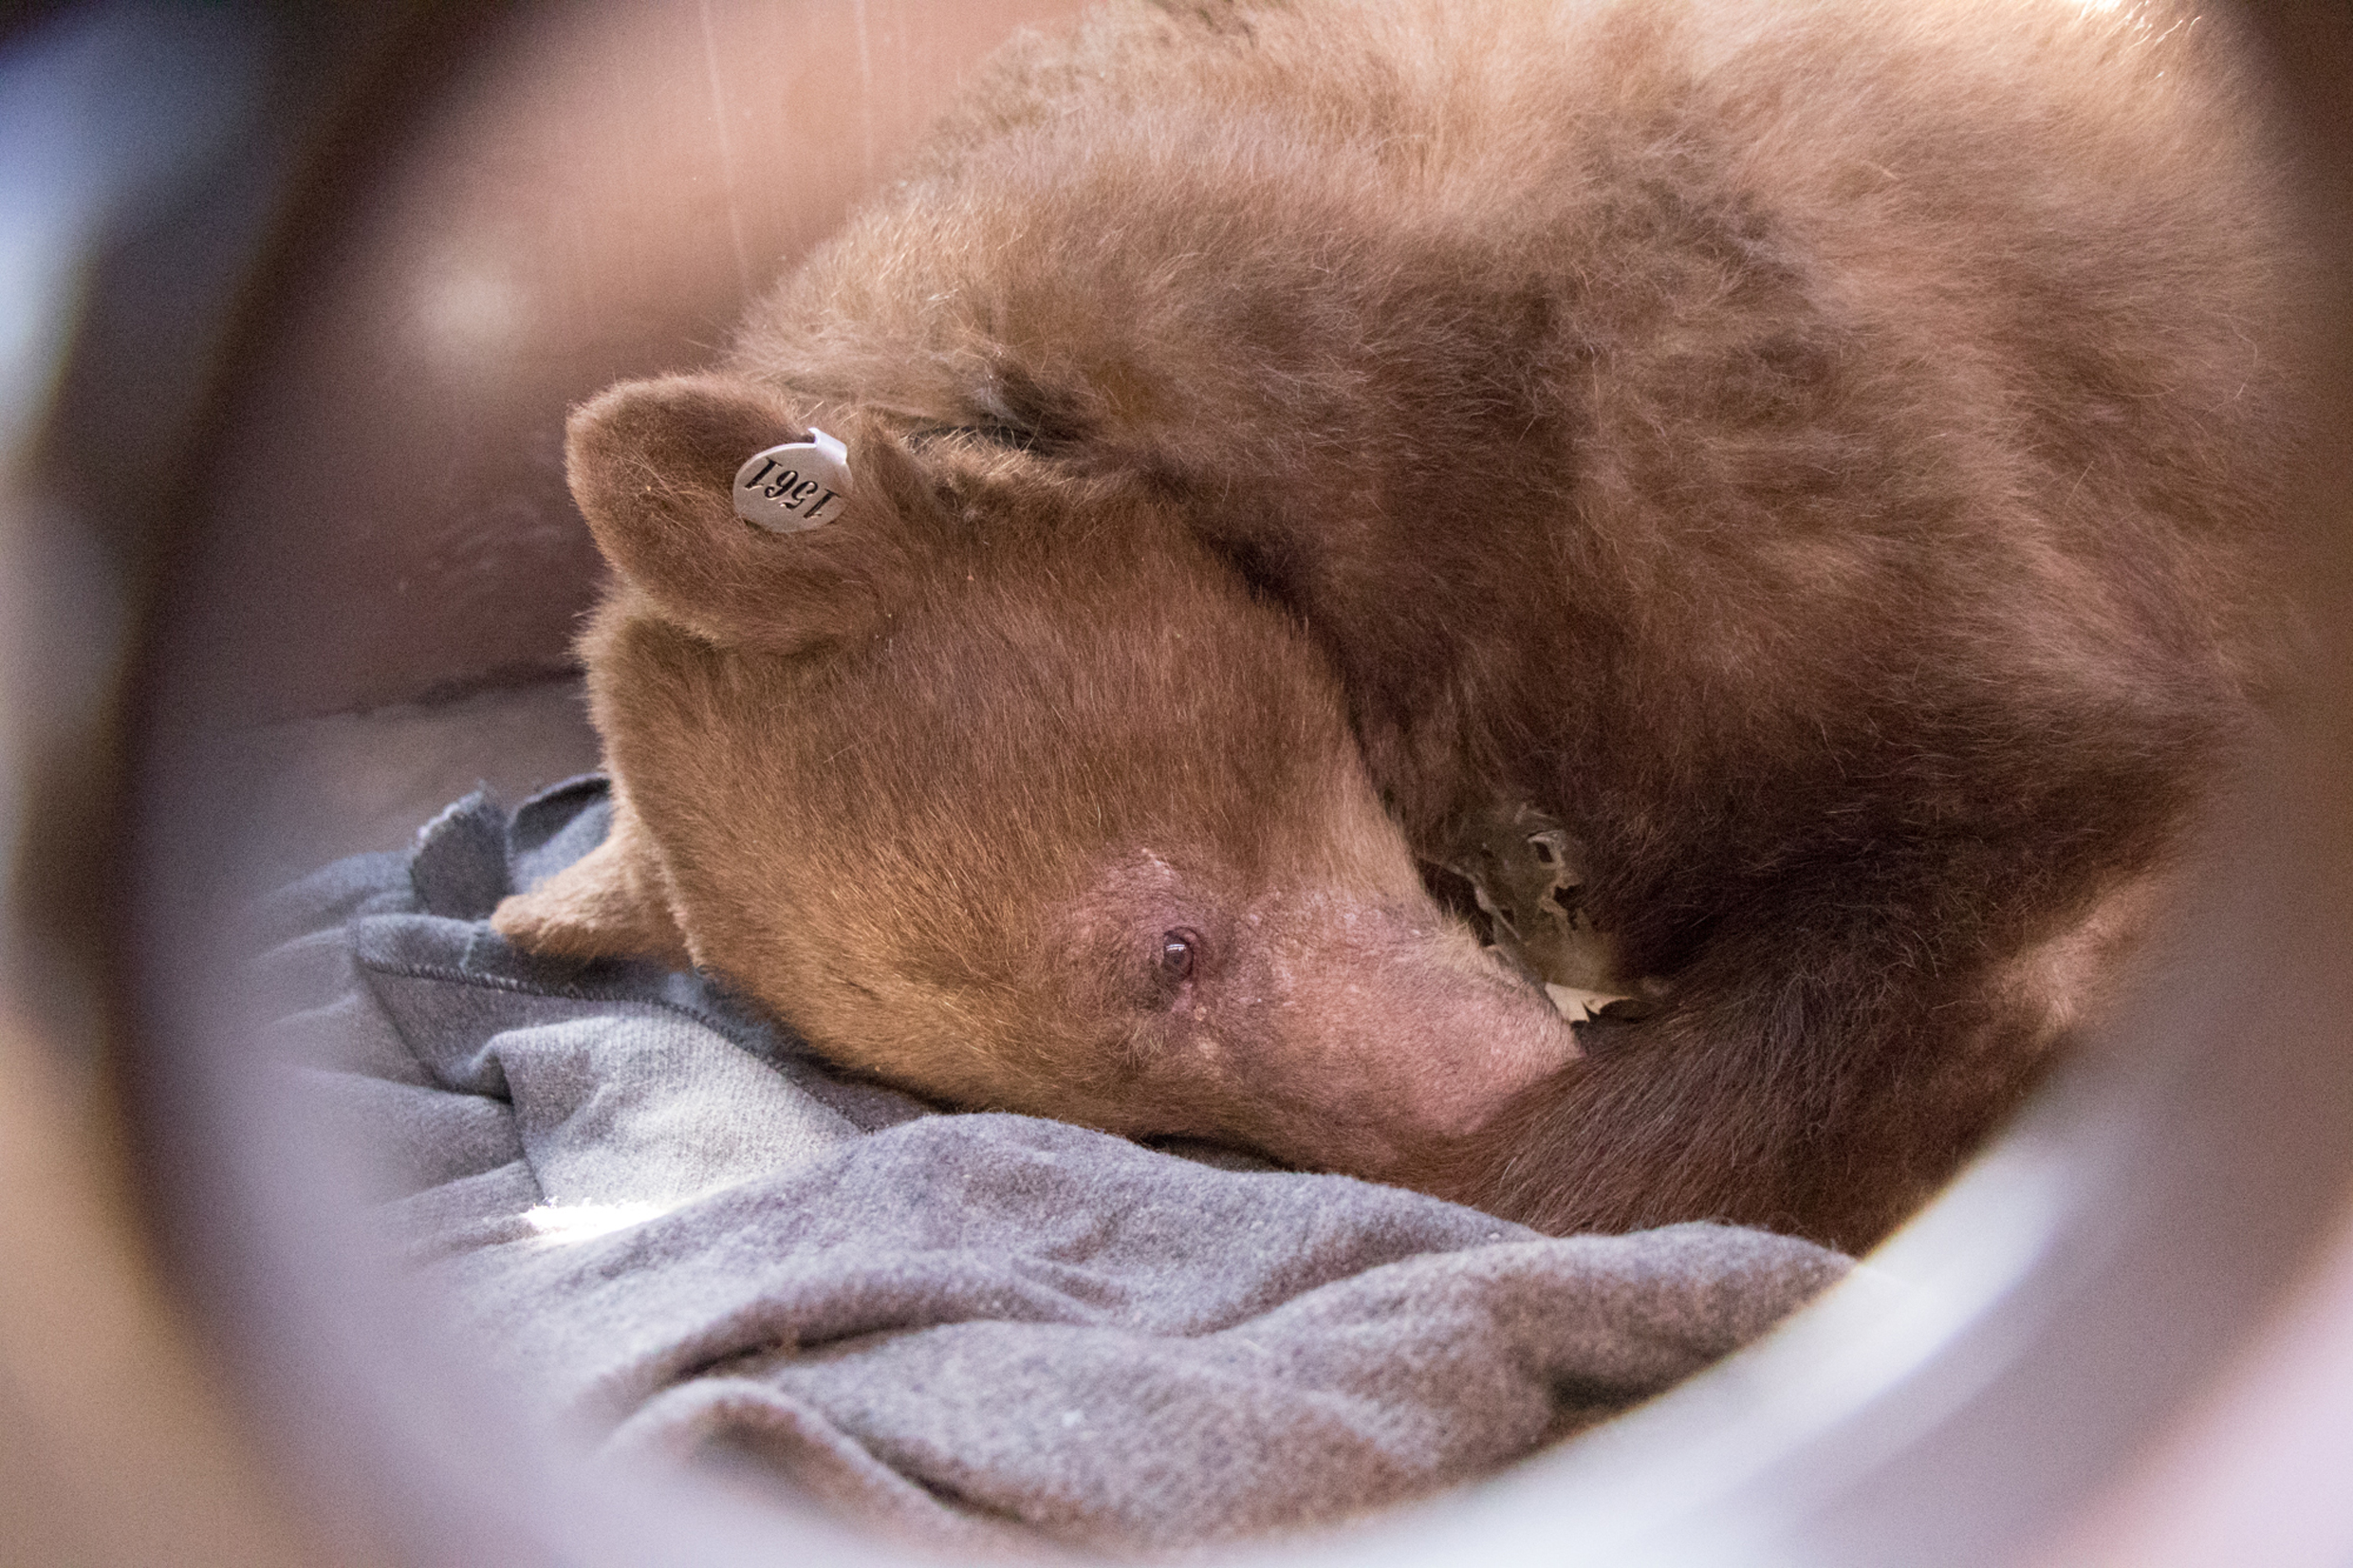 Injured bear recovering.